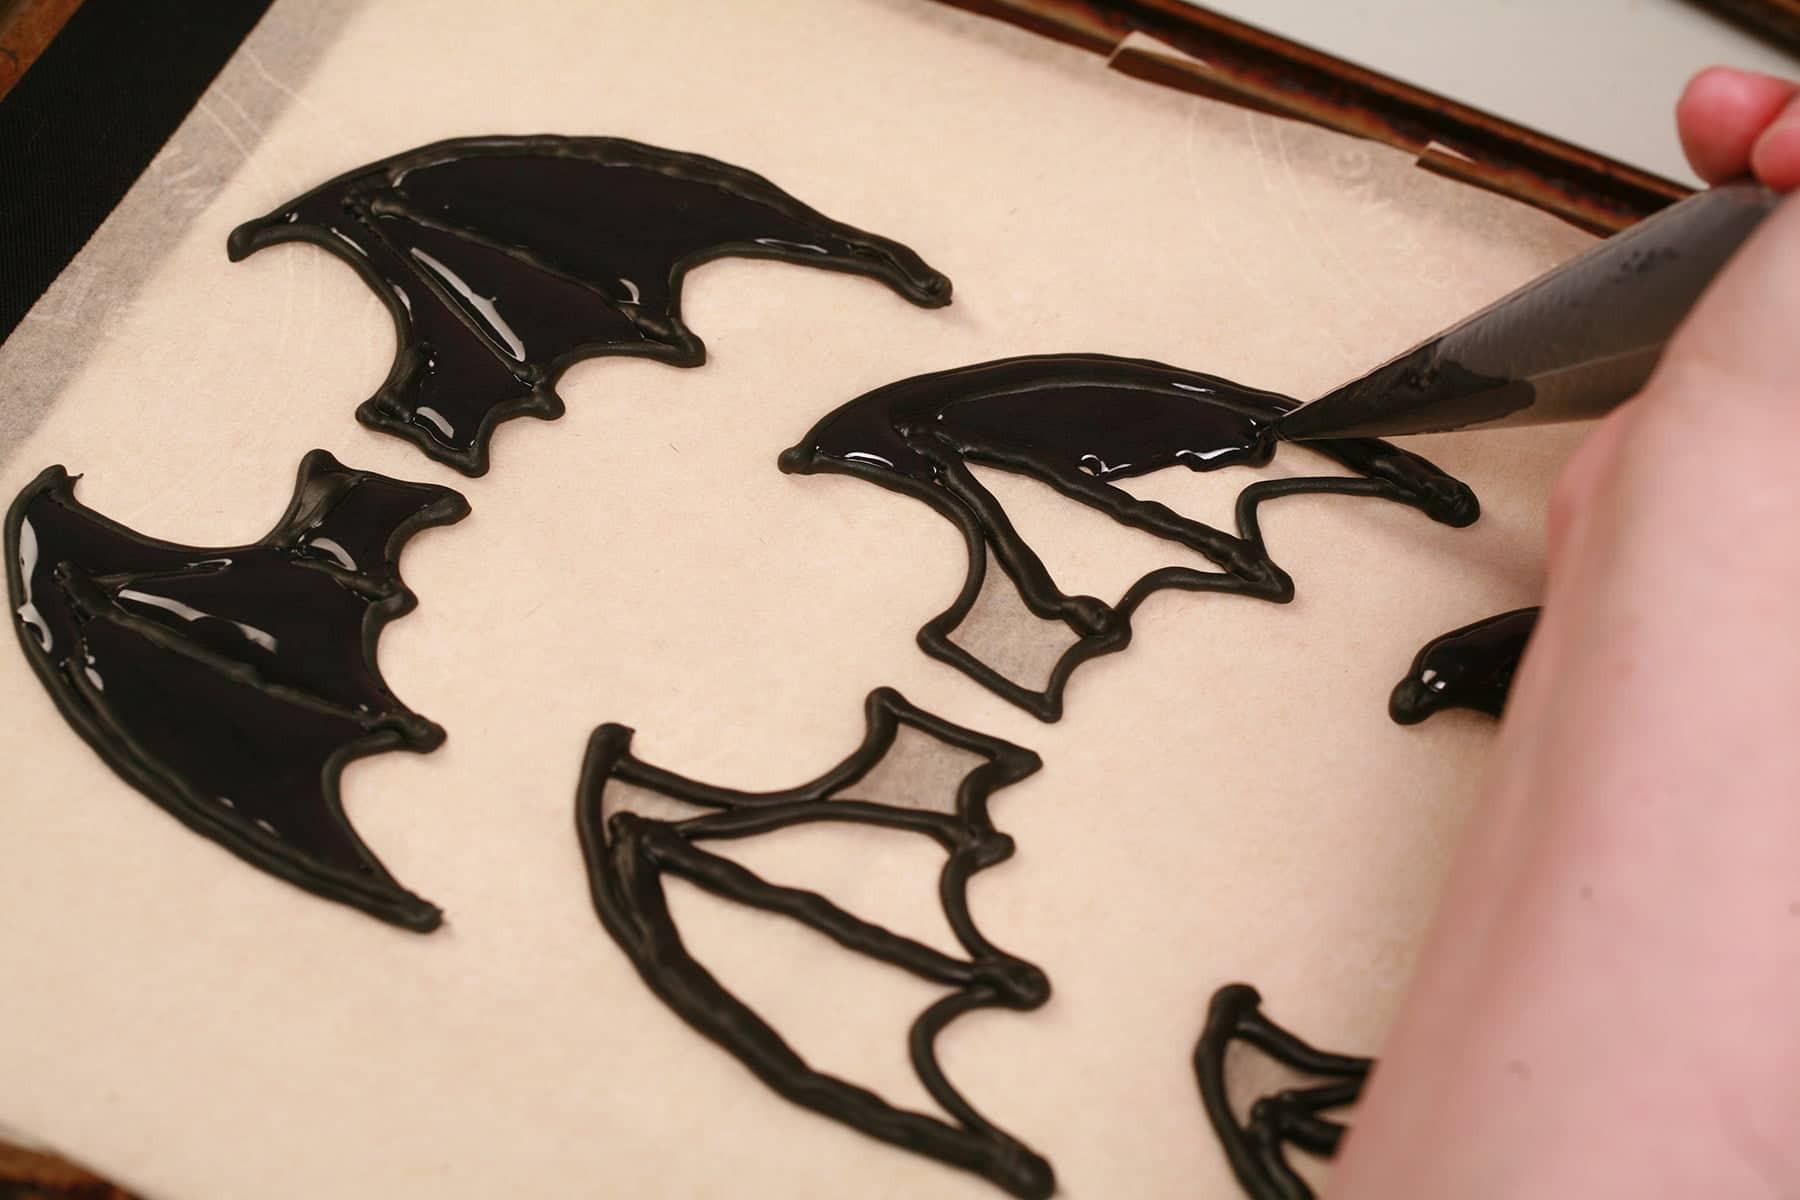 A hand uses a pastry bag of black royal icing to pipe bat wings on a parchment lined baking sheet.